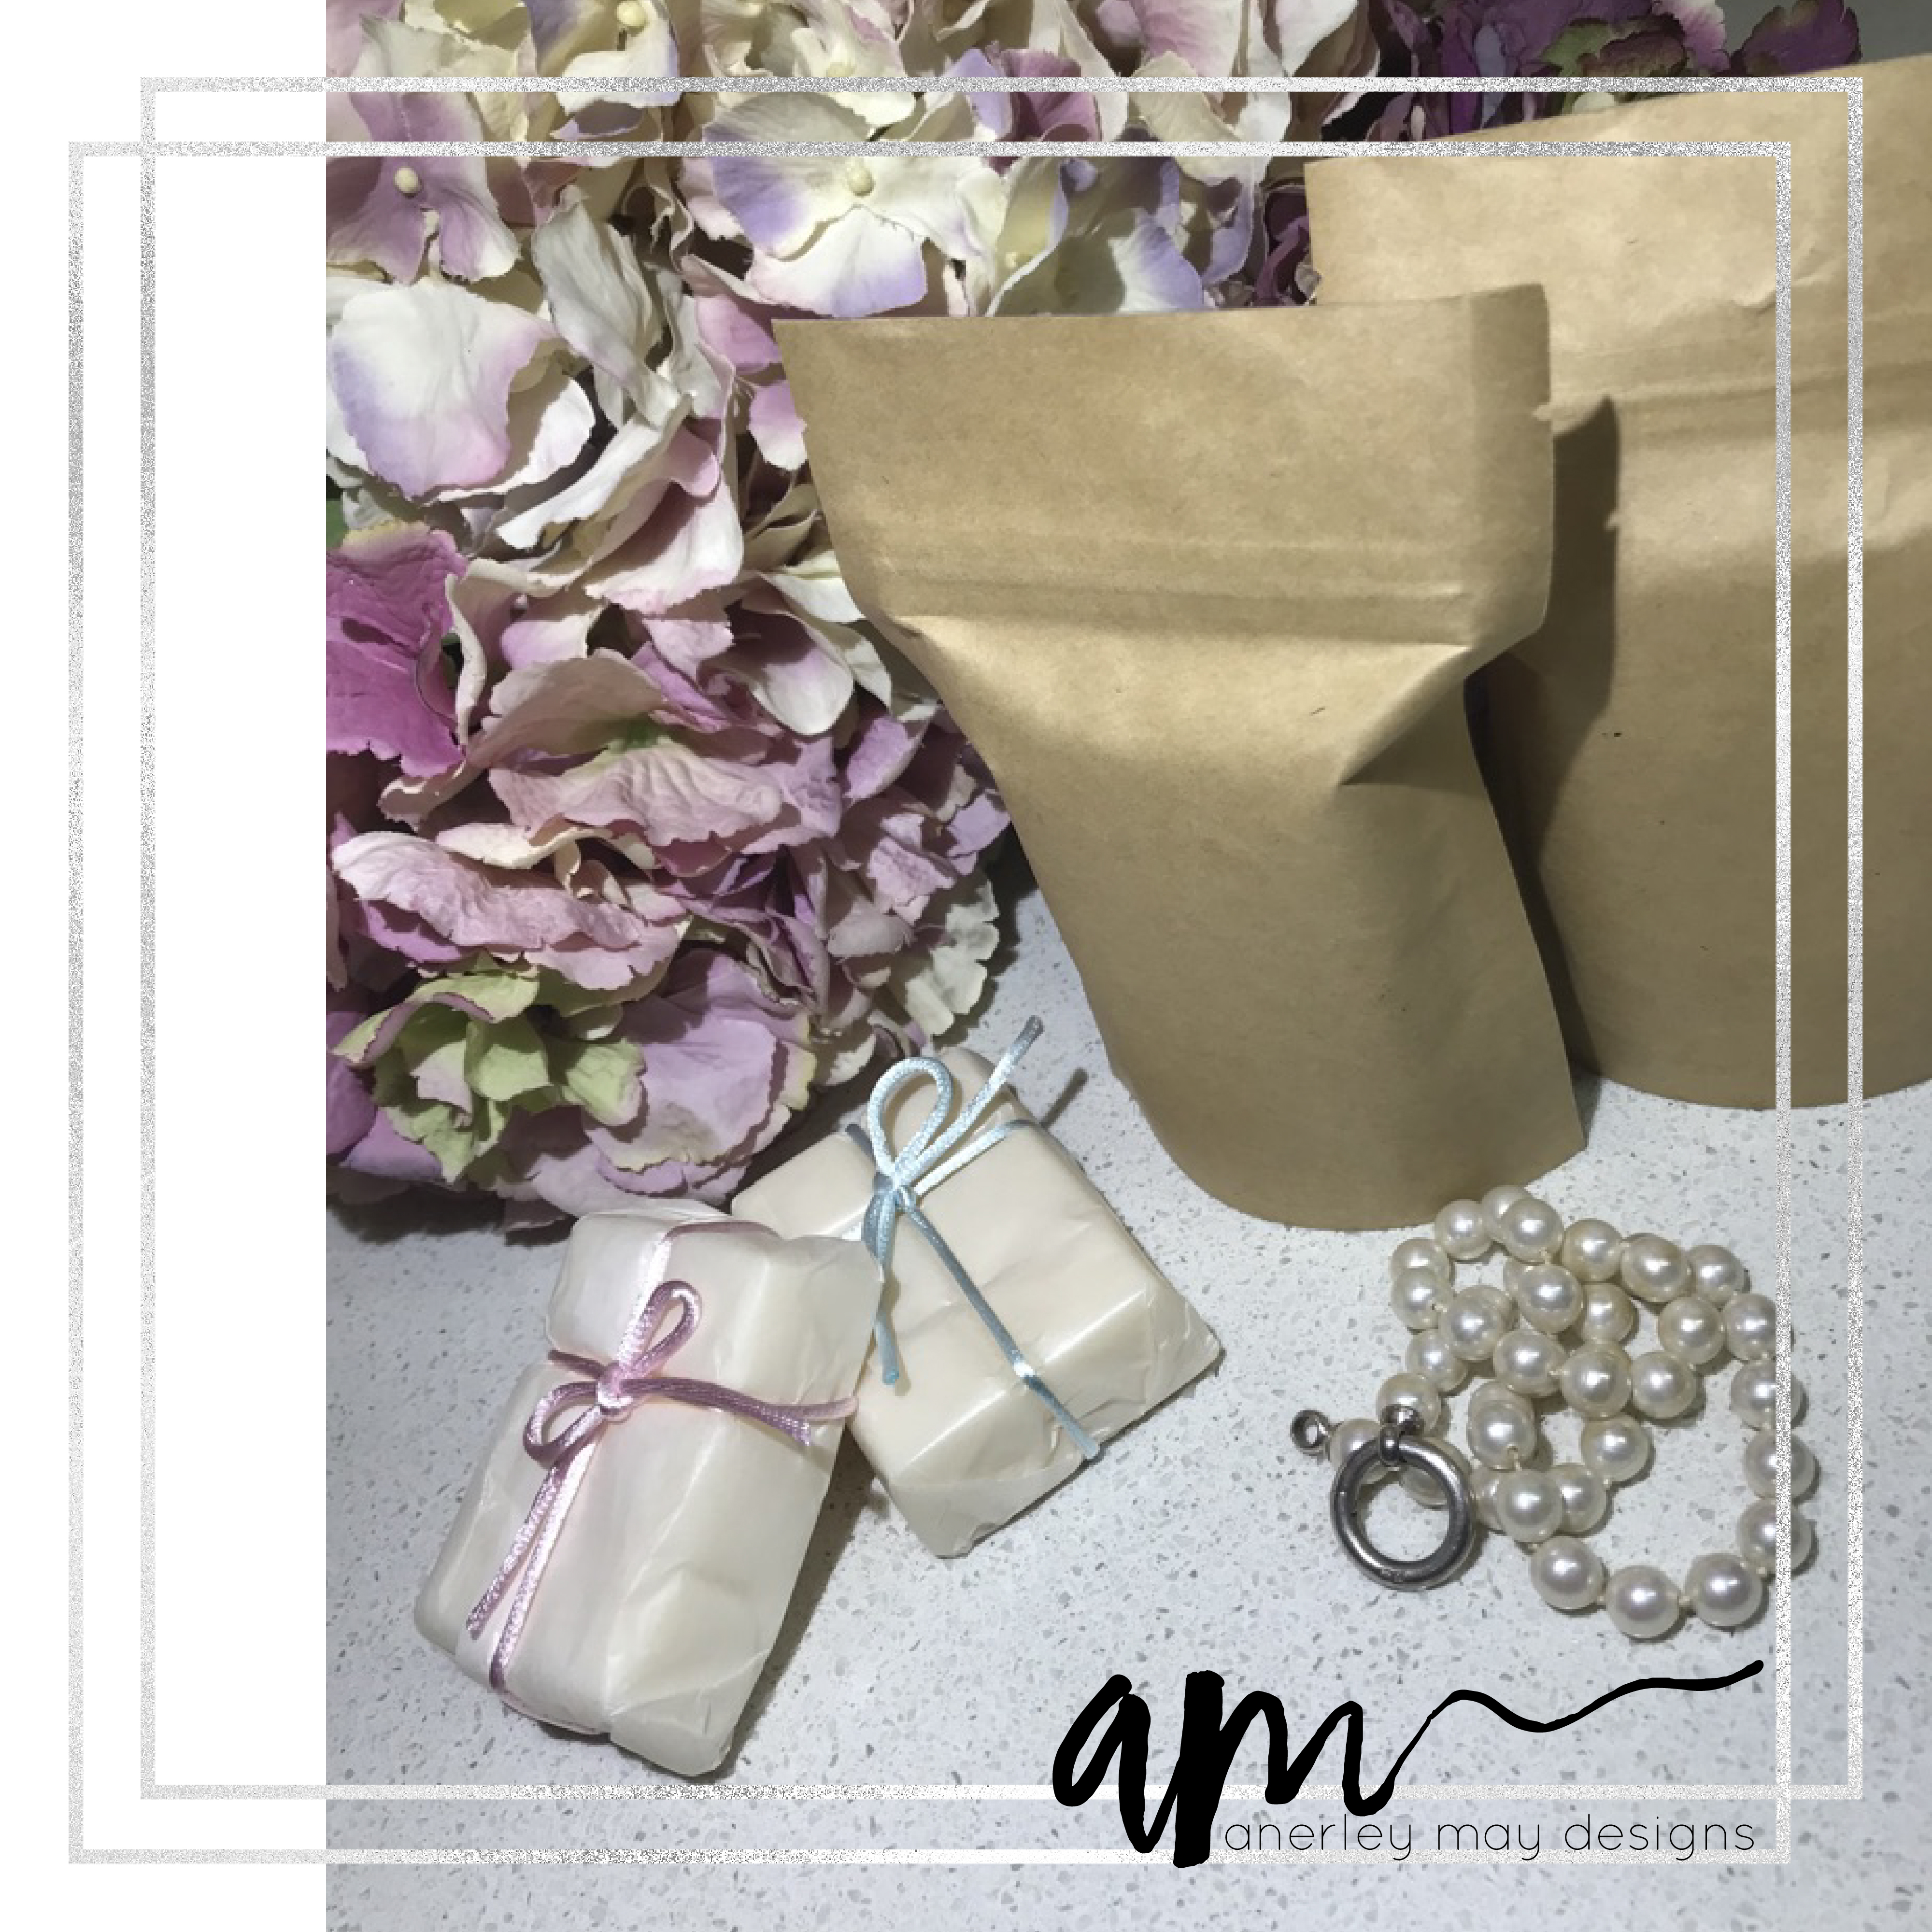 LUXE MELT BAGS ANERLEY MAY DESIGNS-01